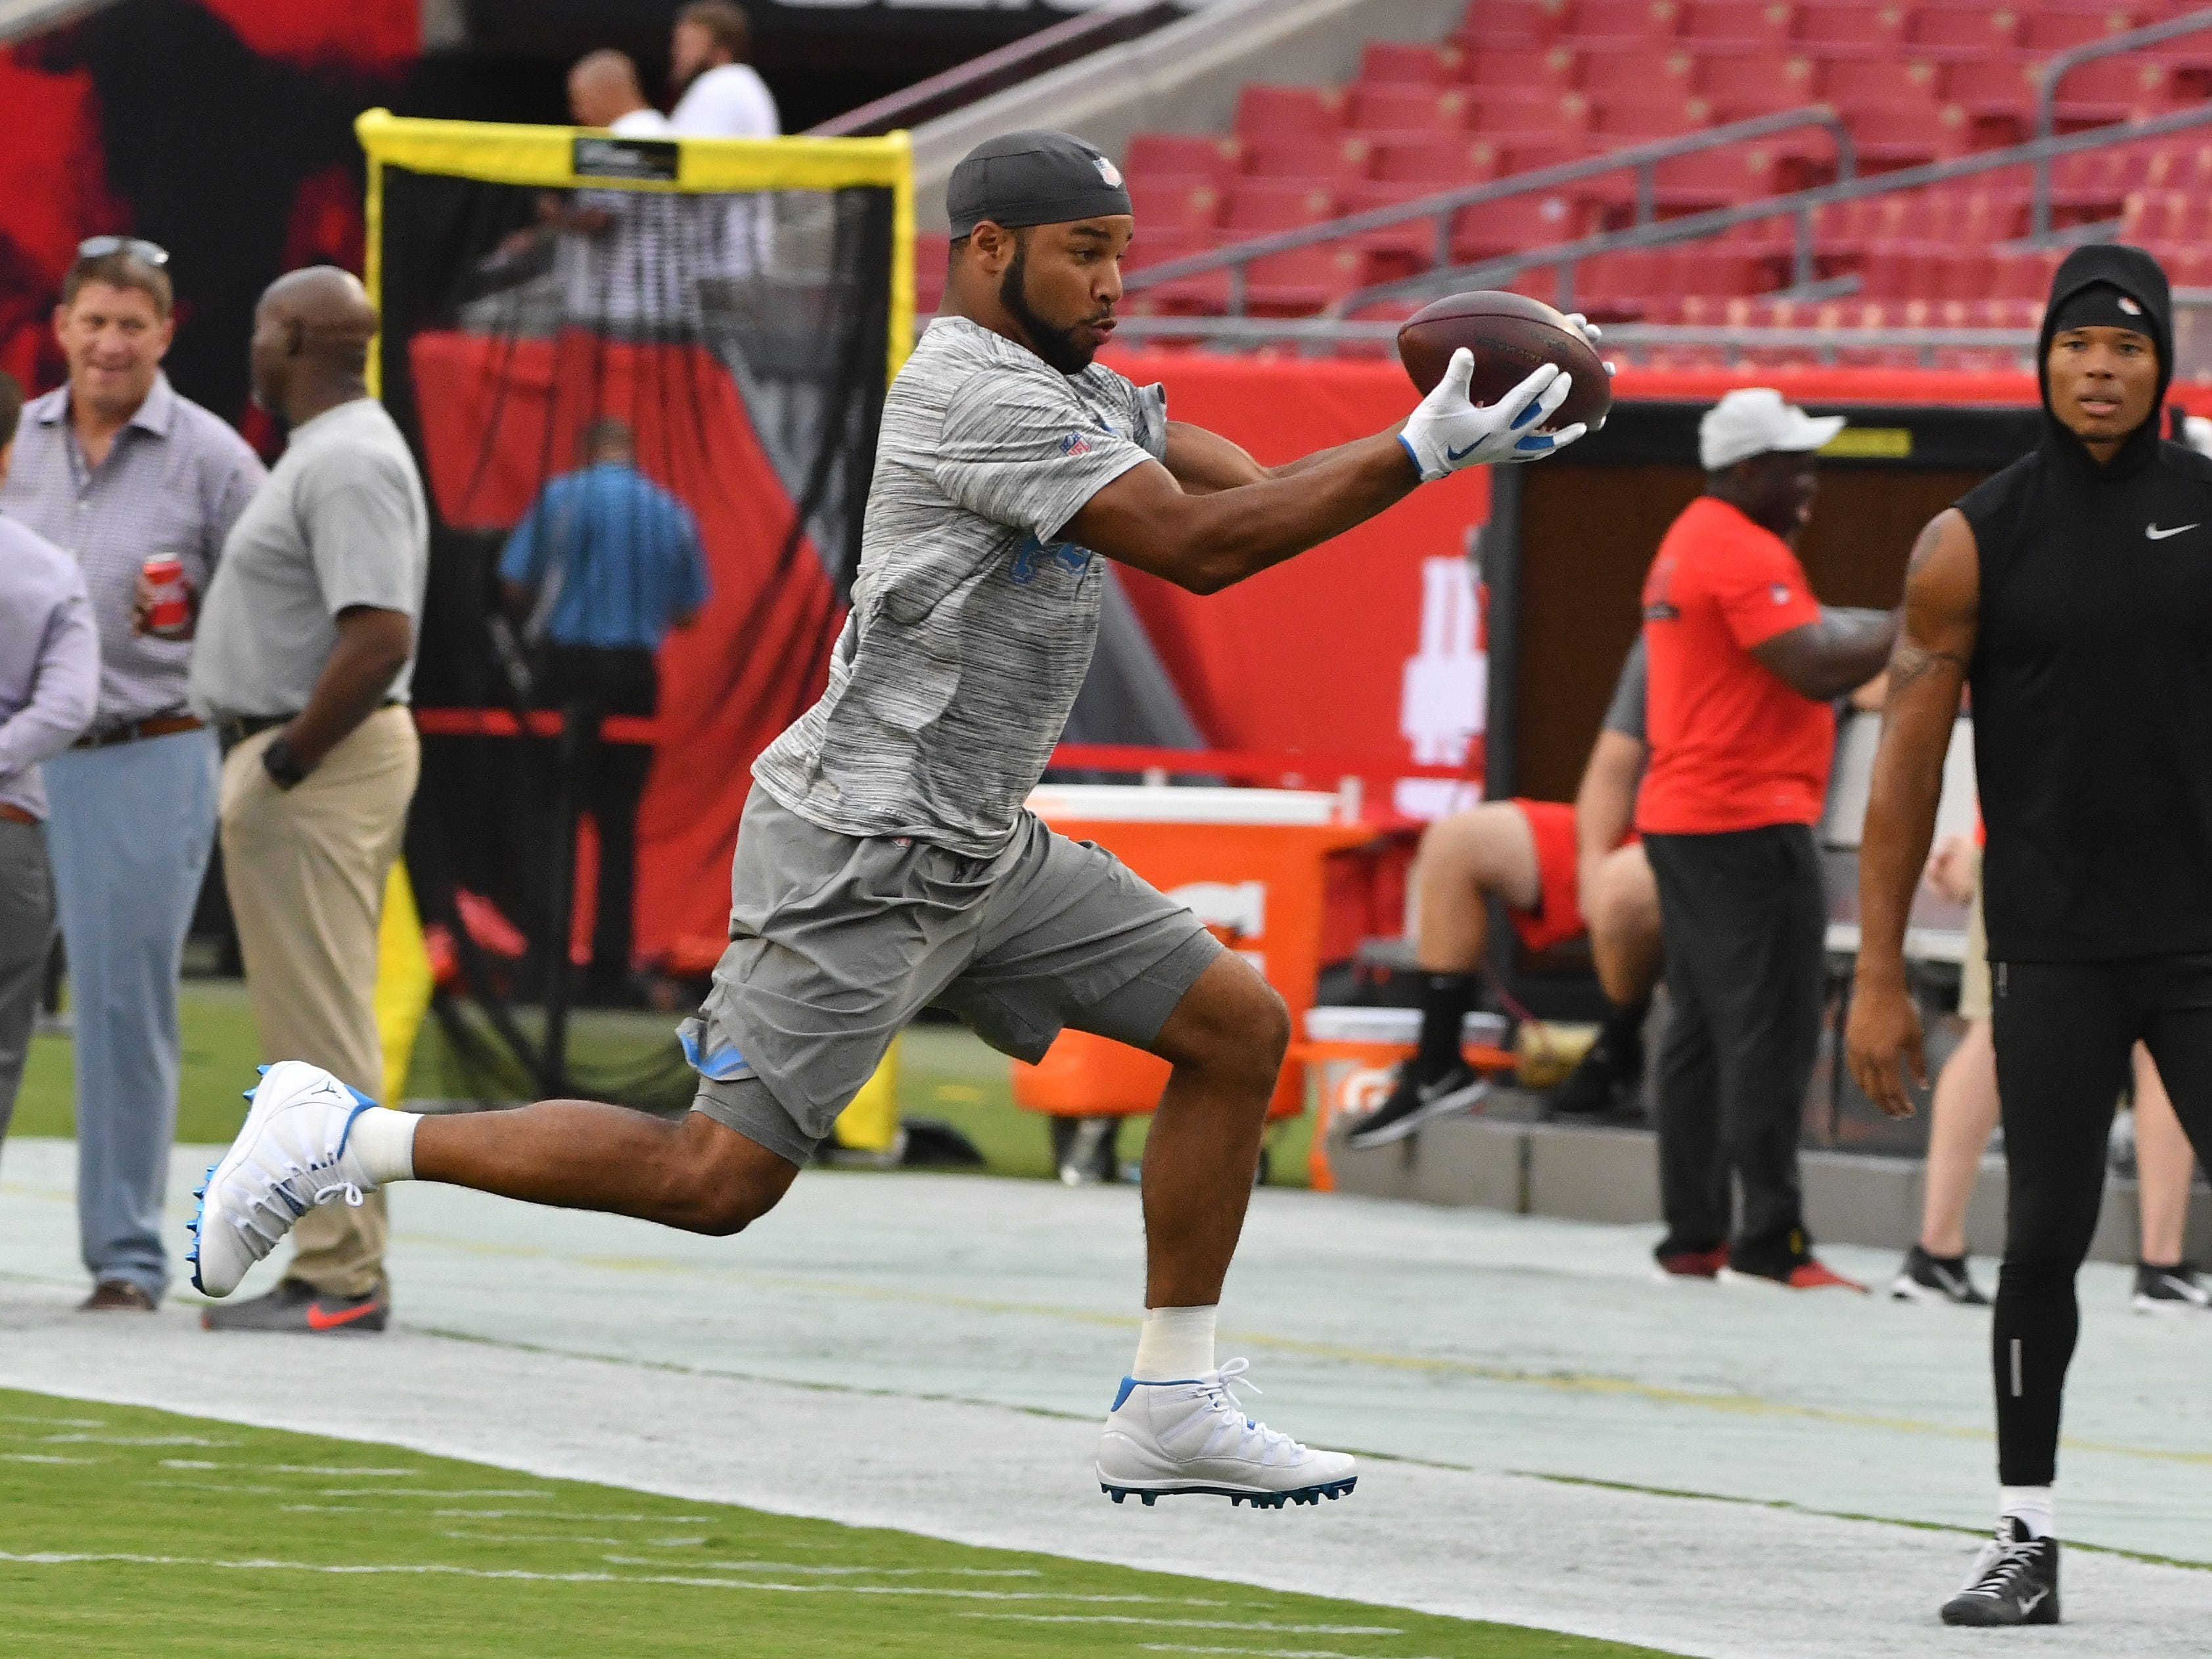 Lions wide receiver Golden Tate gets some air making a reception along the sidelines during warmups.